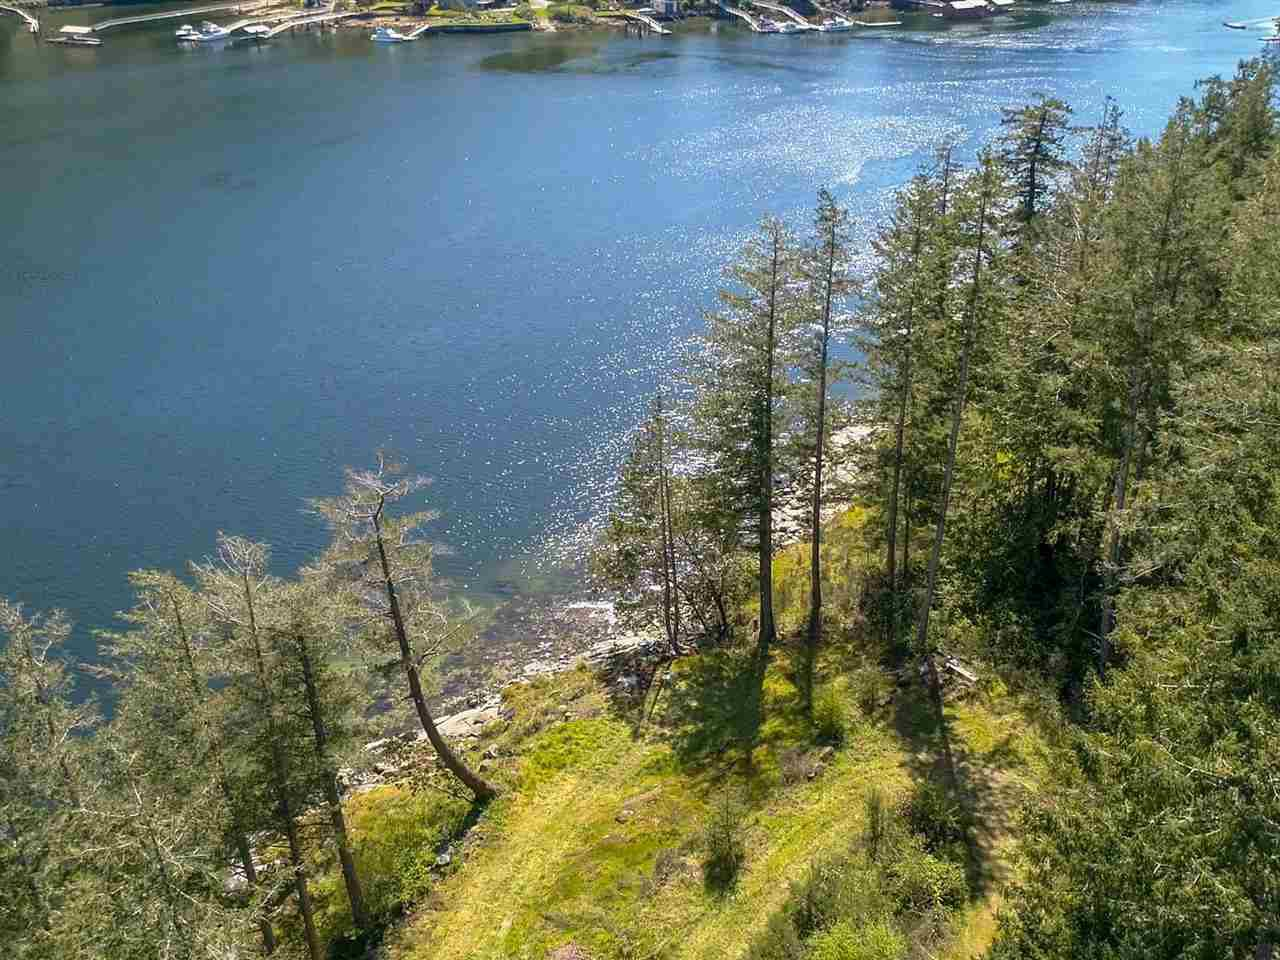 Lot B Daniel Road is a very private acreage at the end of the road. You would own a point of land with easy access along the rock shore frontage to launch a kayak, paddleboard, etc.